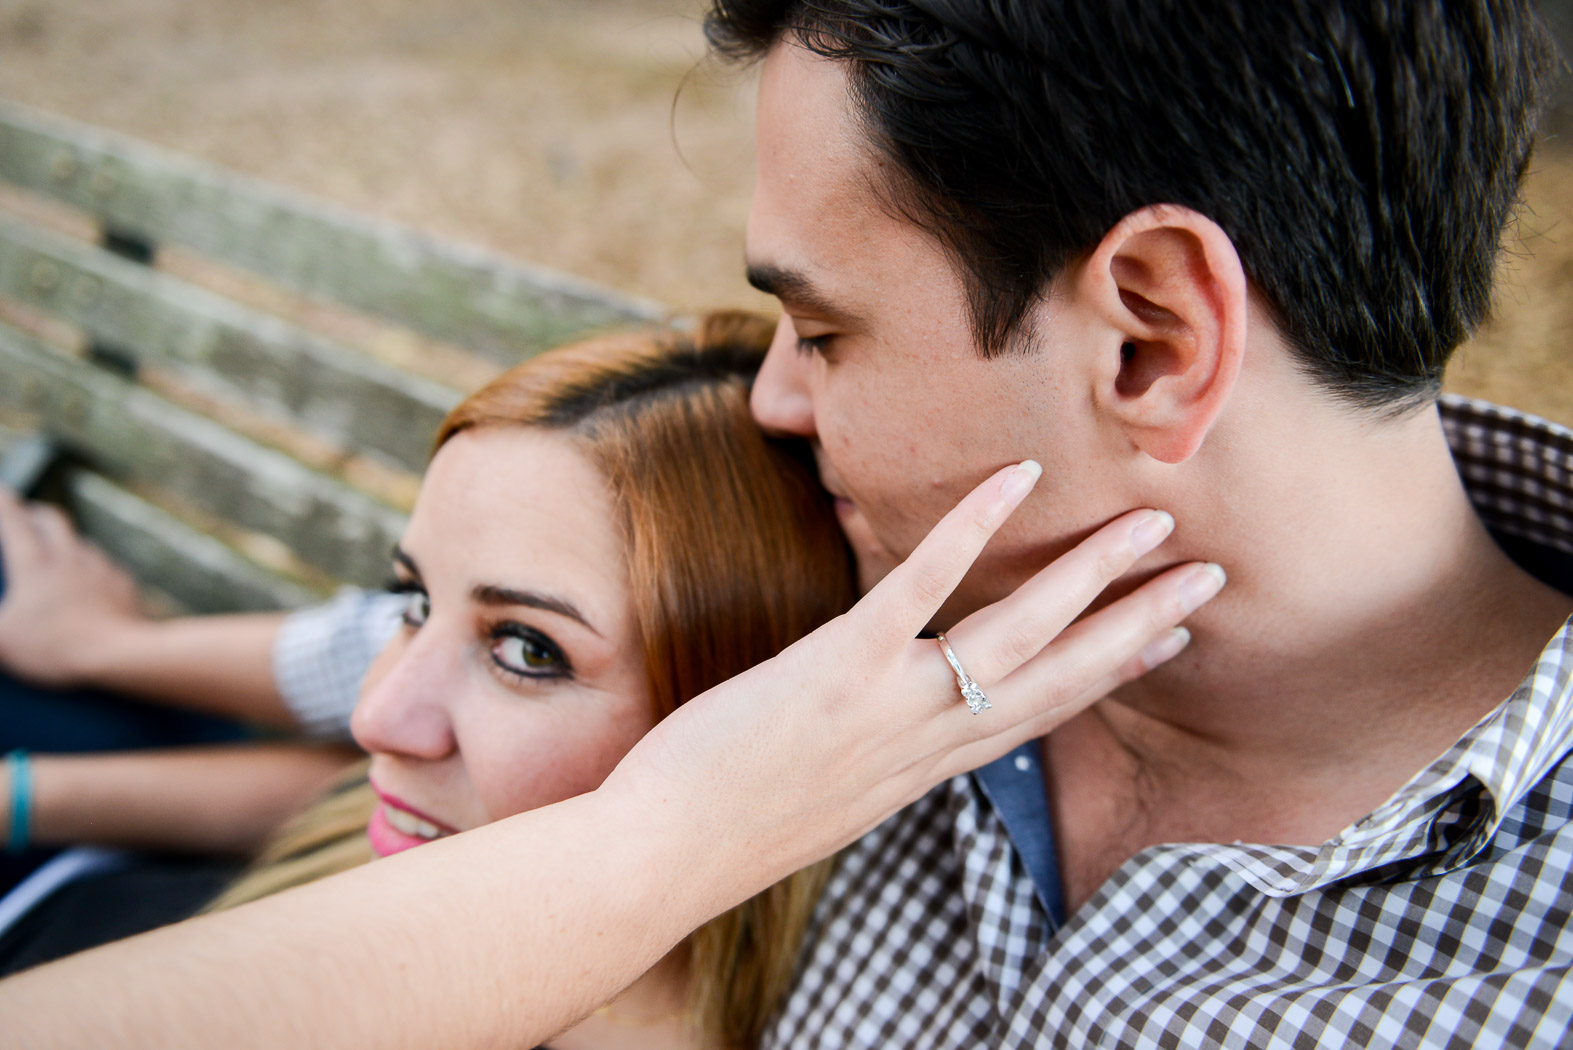 matchmaking pro inc It's just lunch offers professional & personal matchmaking services in greater toronto our matchmaker experts provide an enjoyable alternative to online dating sites.